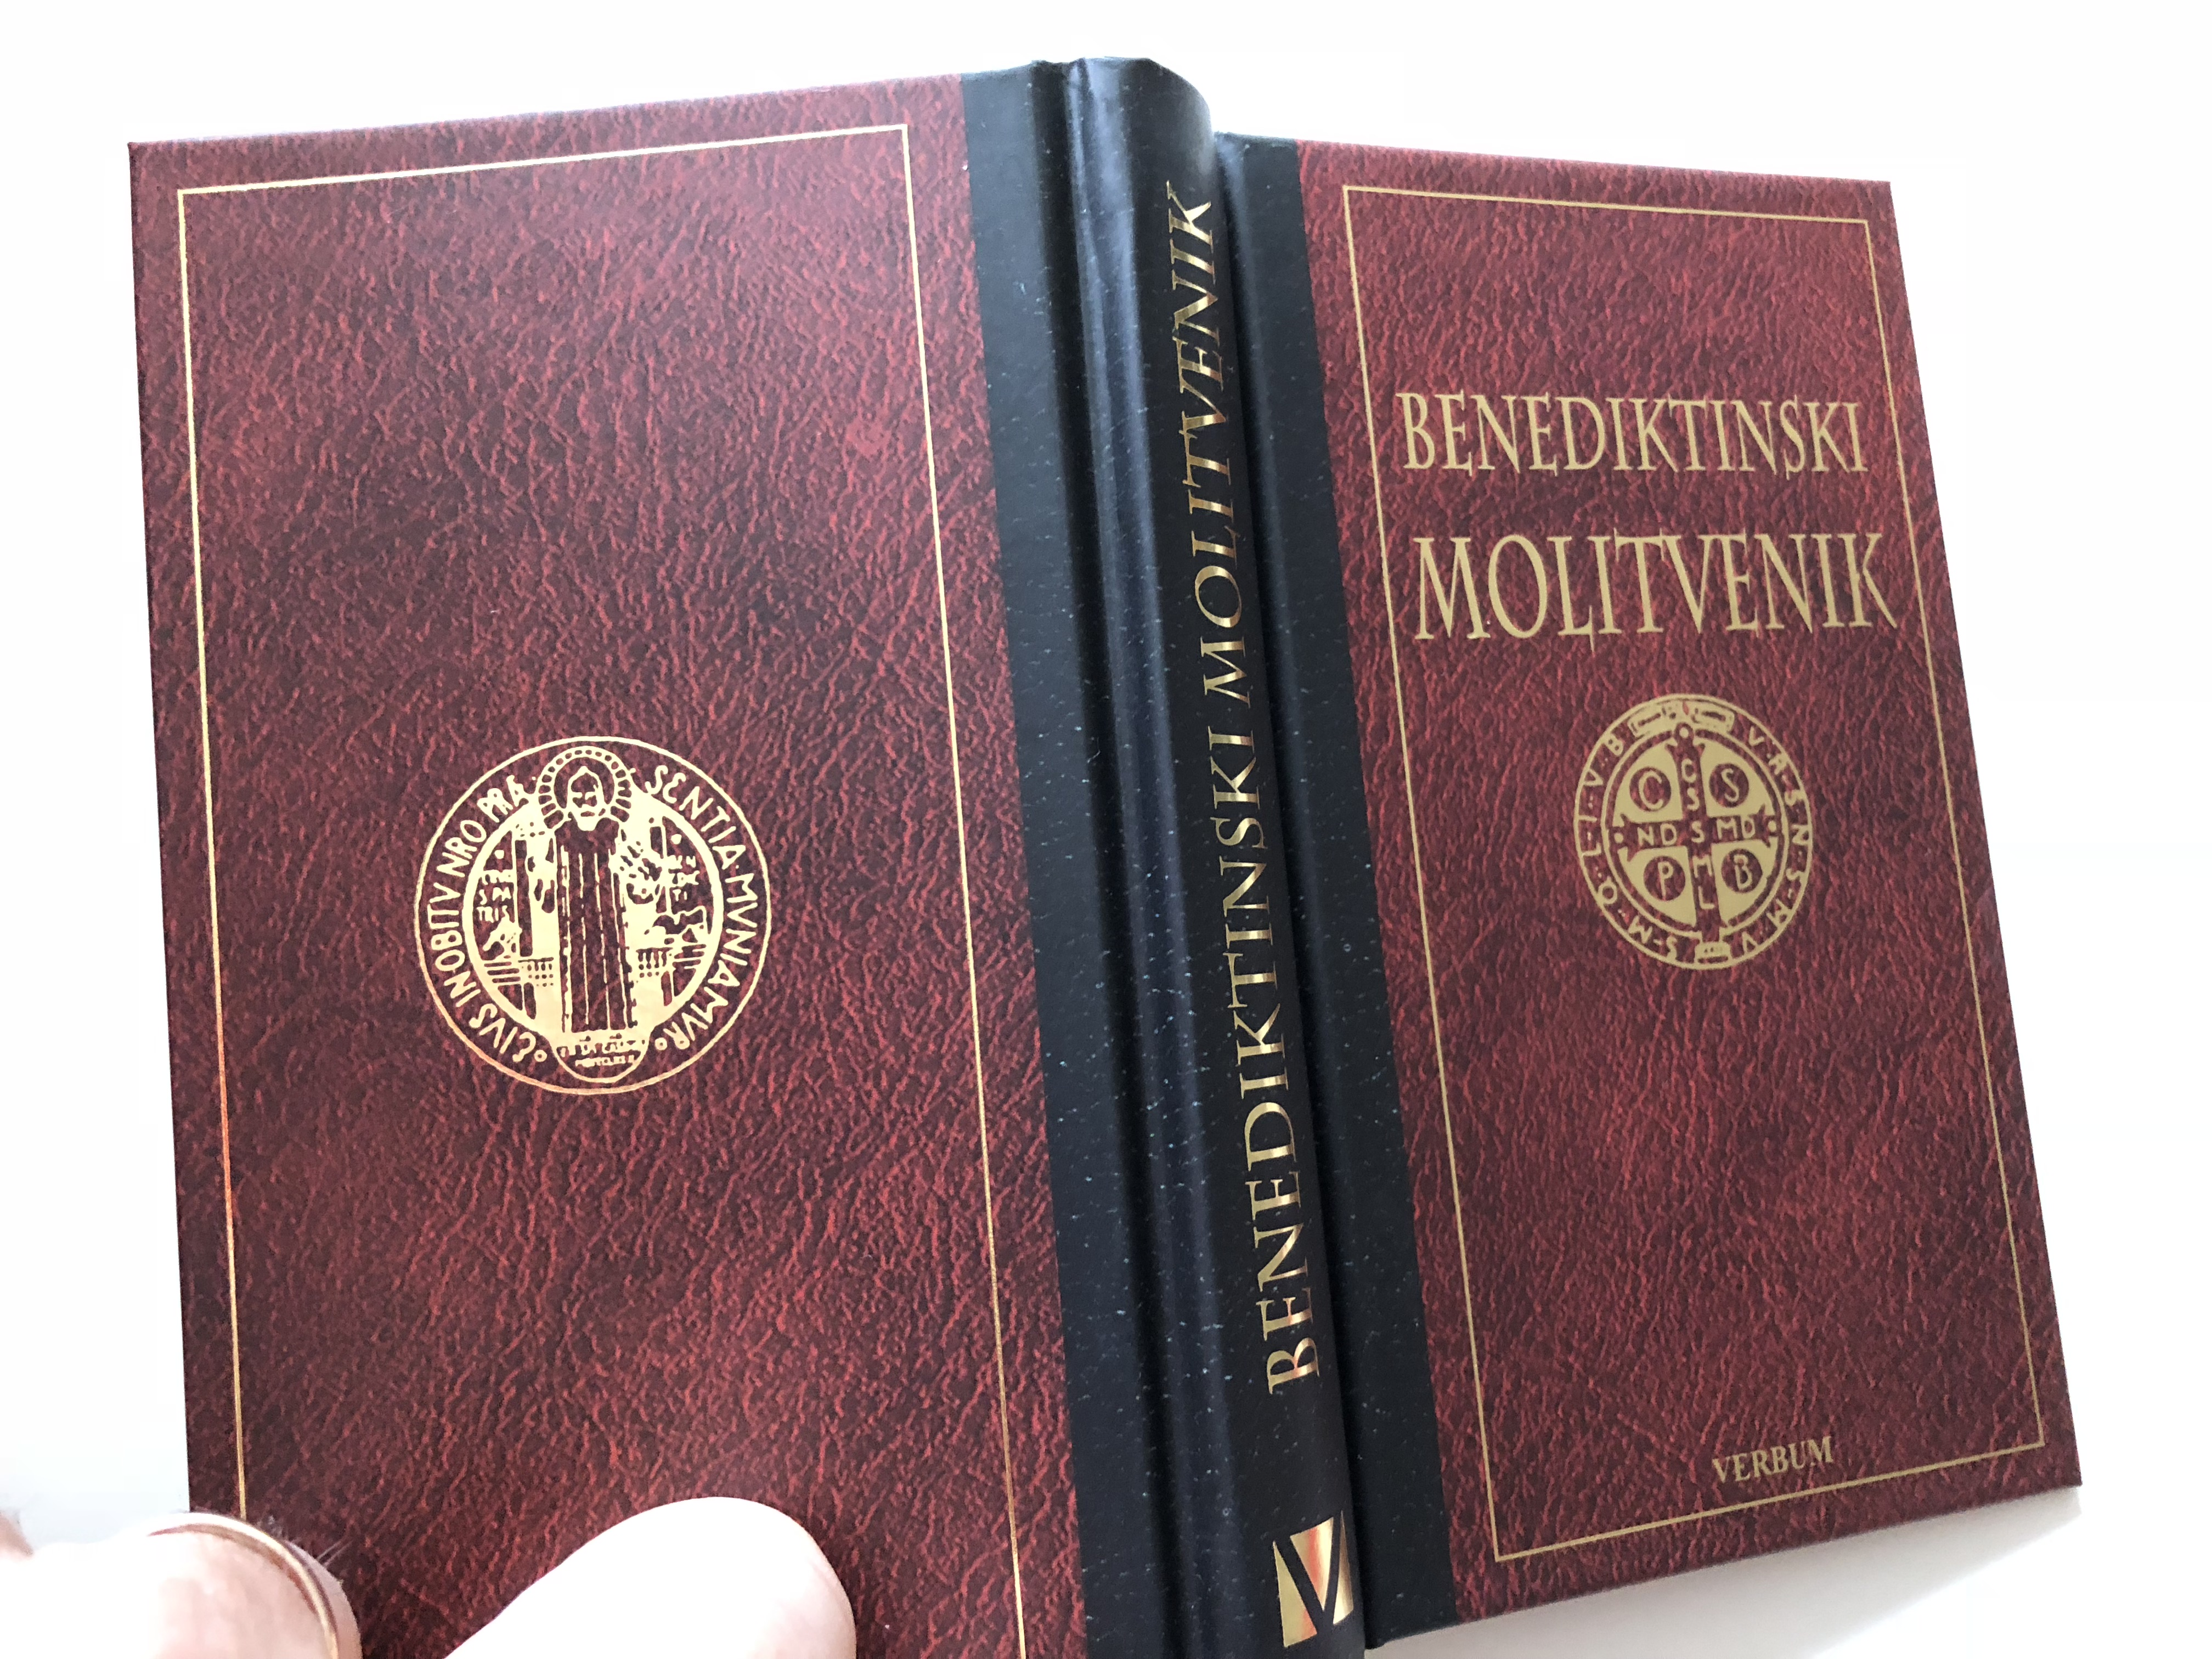 croatian-benedictine-prayerbook-5th-edition-2018-3-.jpg